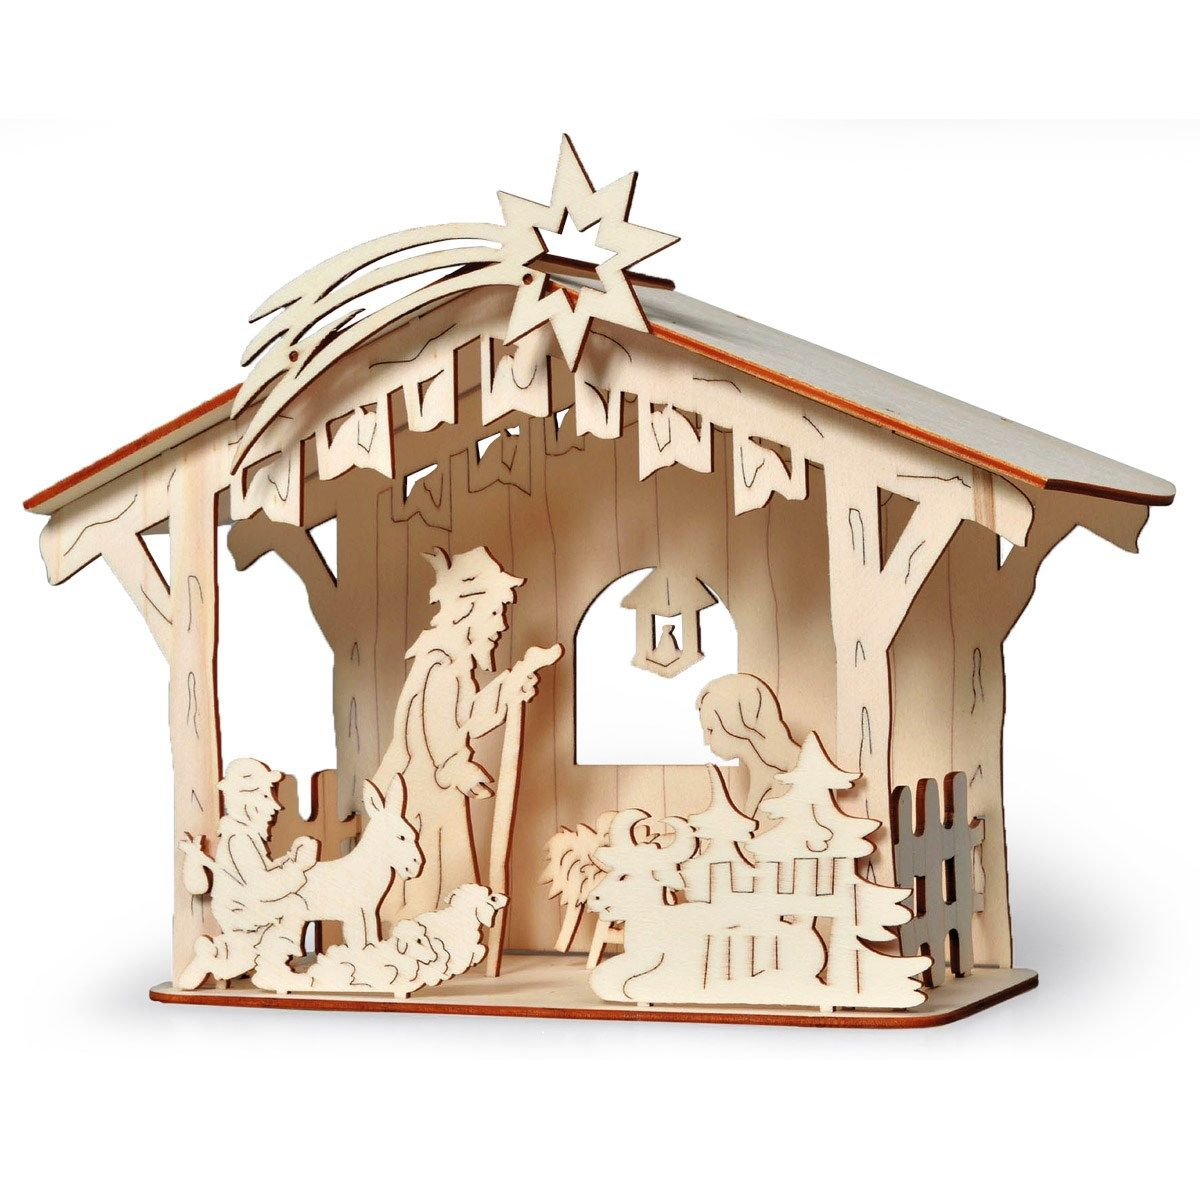 Bethlehem laser cutting projects to try pinterest for Nativity cut out patterns wood